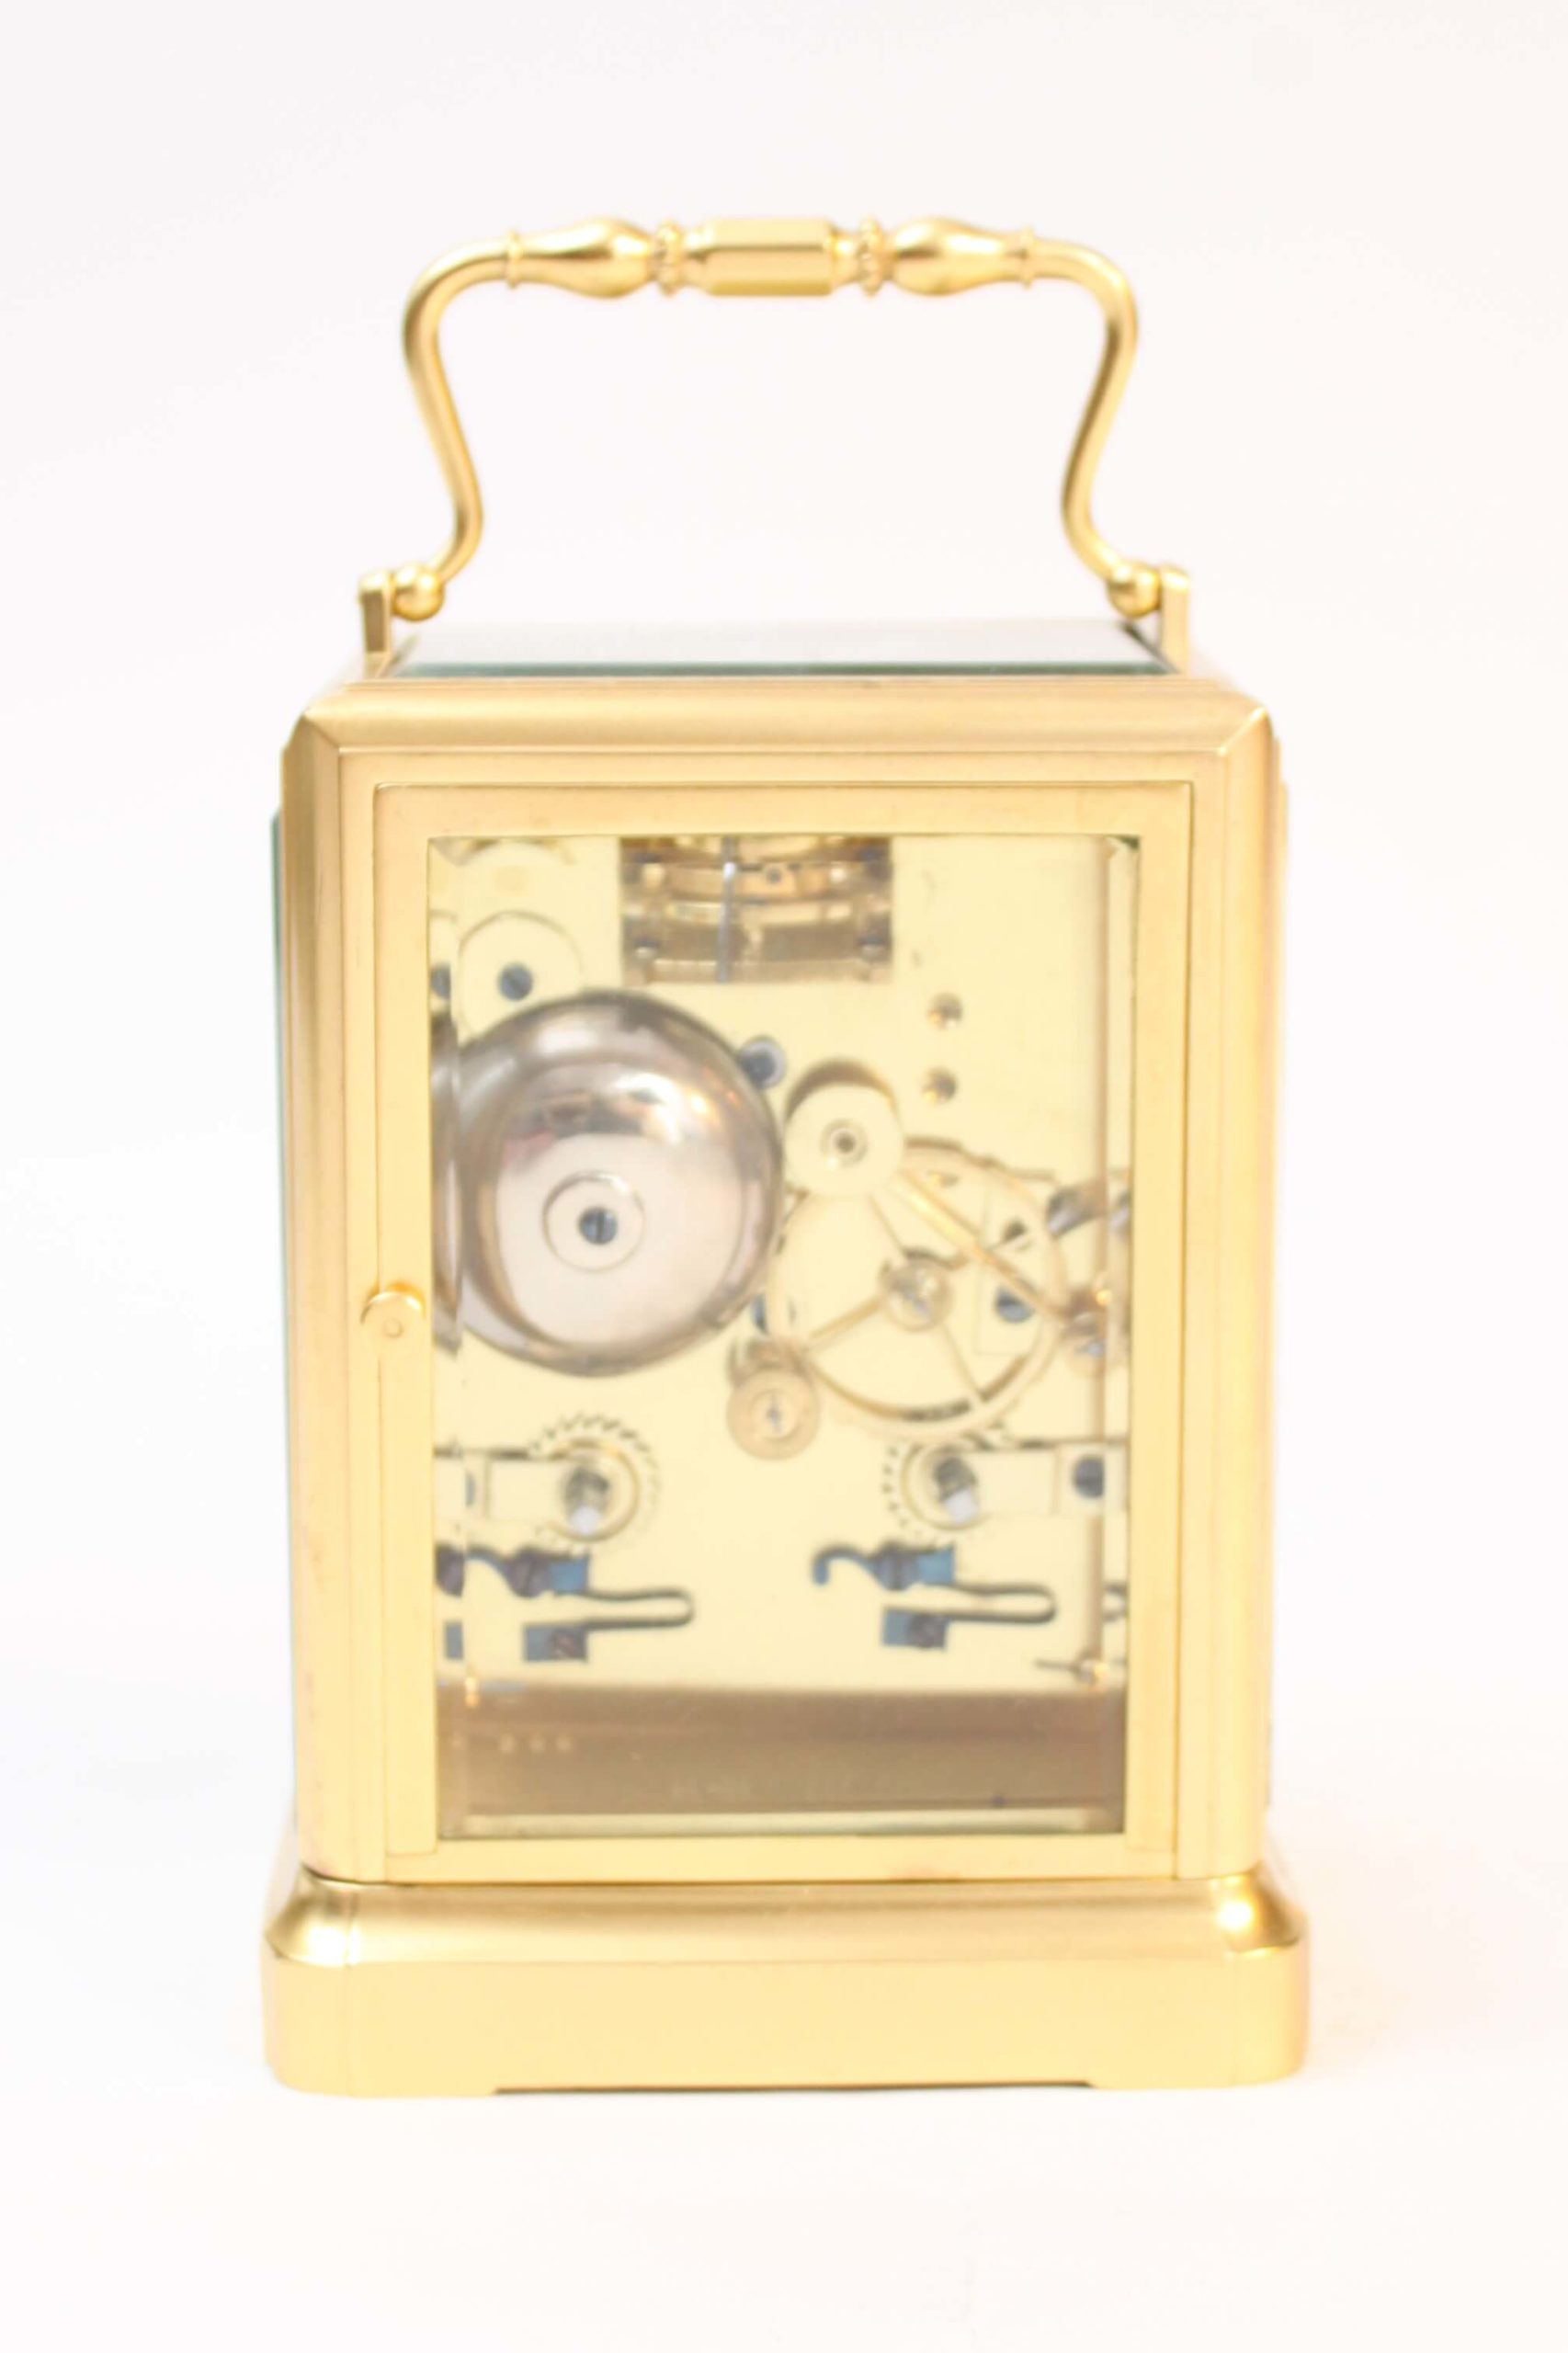 French-one-piece-brass-antique-carriage-travel-clock-jules-paris-escapement-